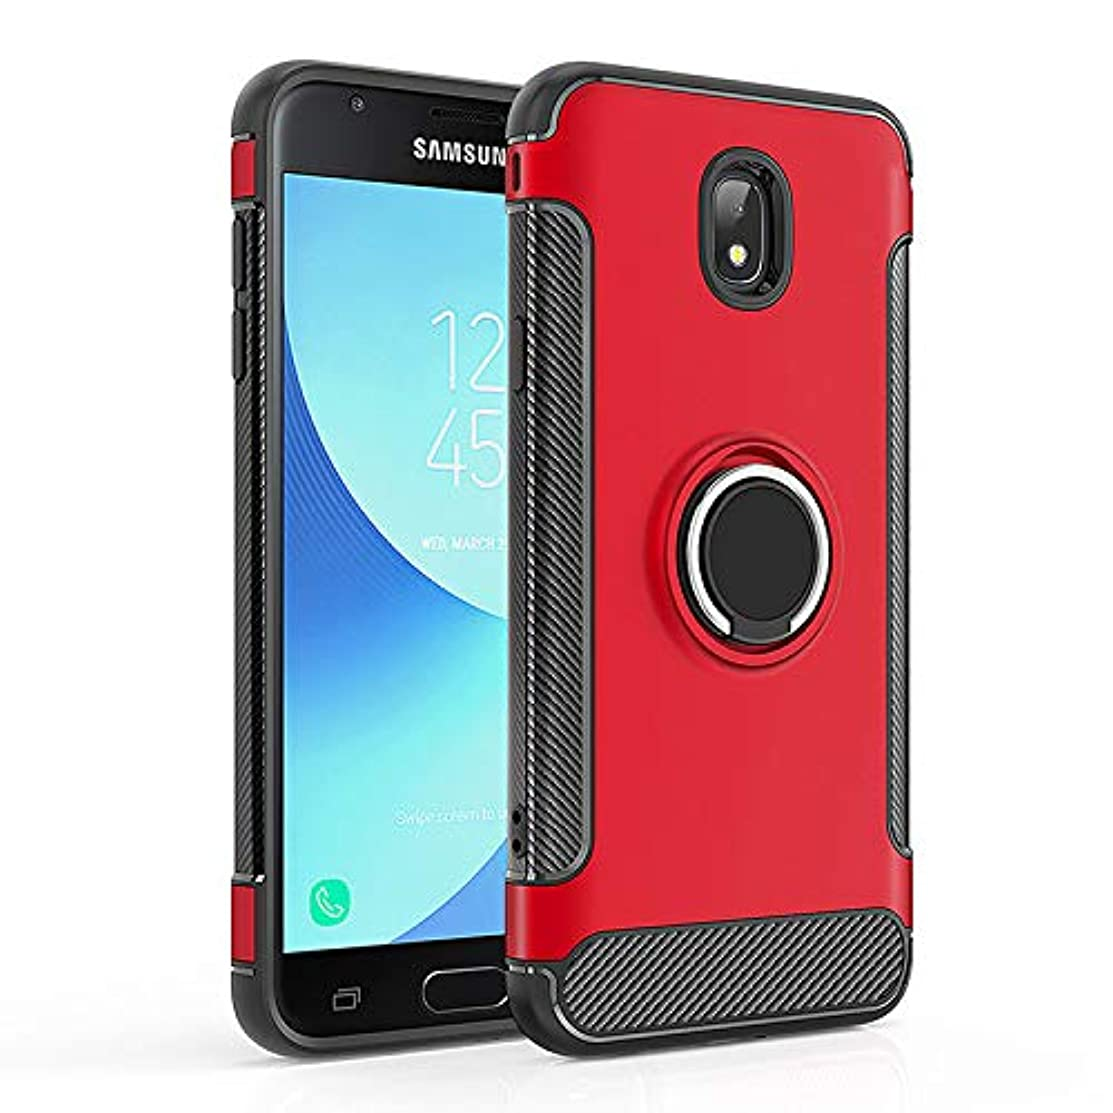 Case for Samsung SM-J737A Galaxy J7 2018 / SM-J737V J7 V 2018 XLTE/Galaxy J7 Aero SM-J737T Galaxy J7 Star/SM-J737P J7 Refine 2018 Case Cover + 360 Degree Rotating Ring Holder Kickstand Red